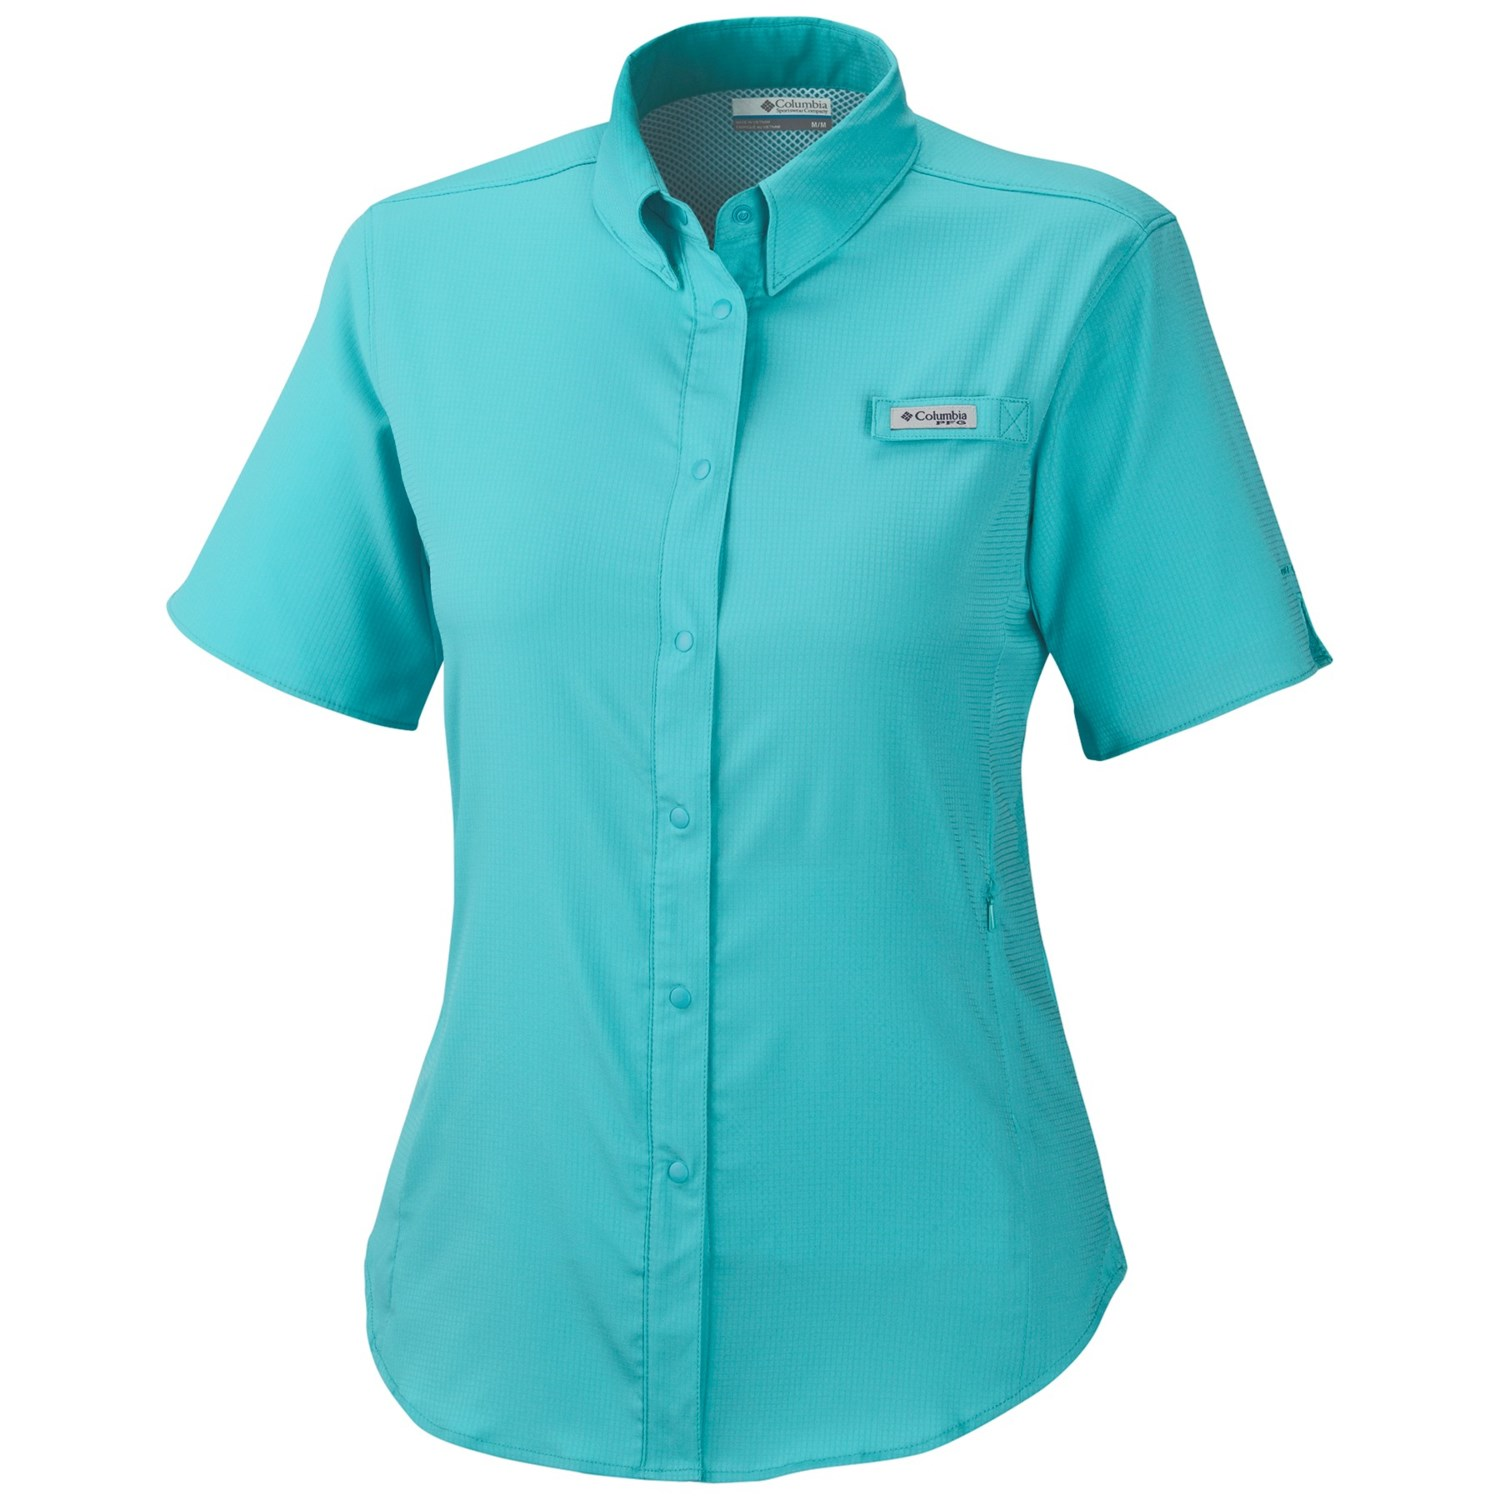 Columbia sportswear tamiami ii fishing shirt upf 40 Columbia womens fishing shirt